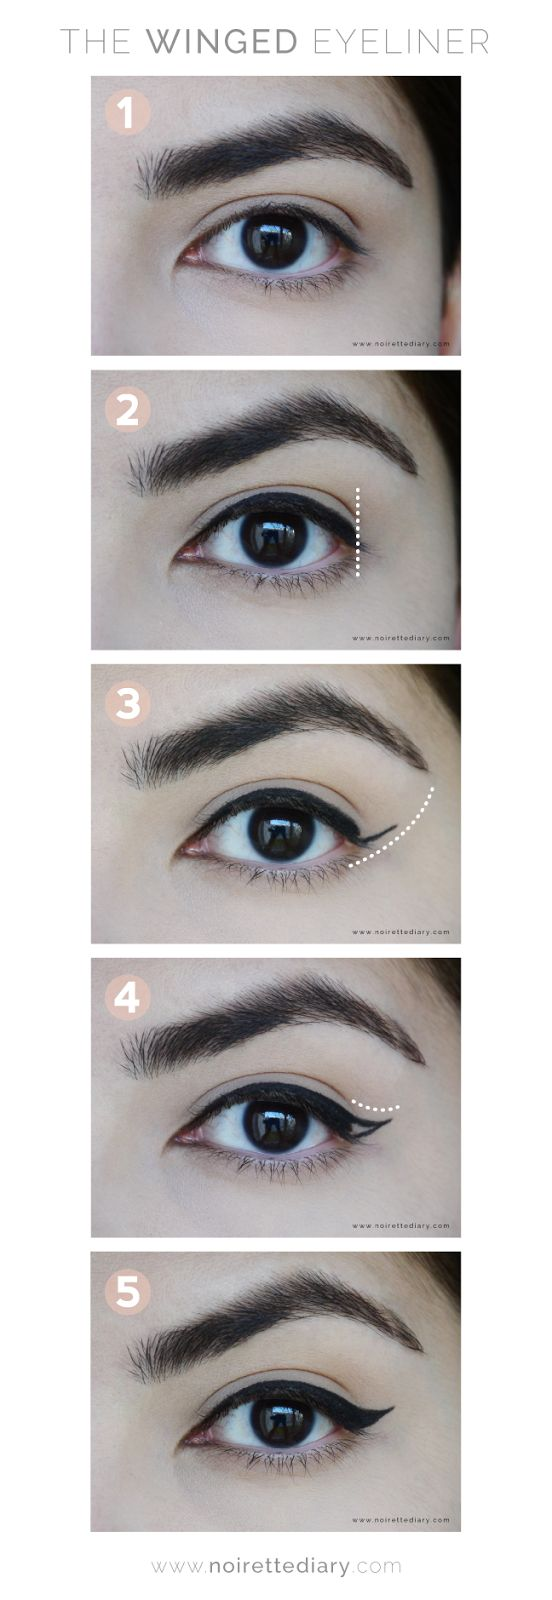 Pictorial: The Winged Eyeliner